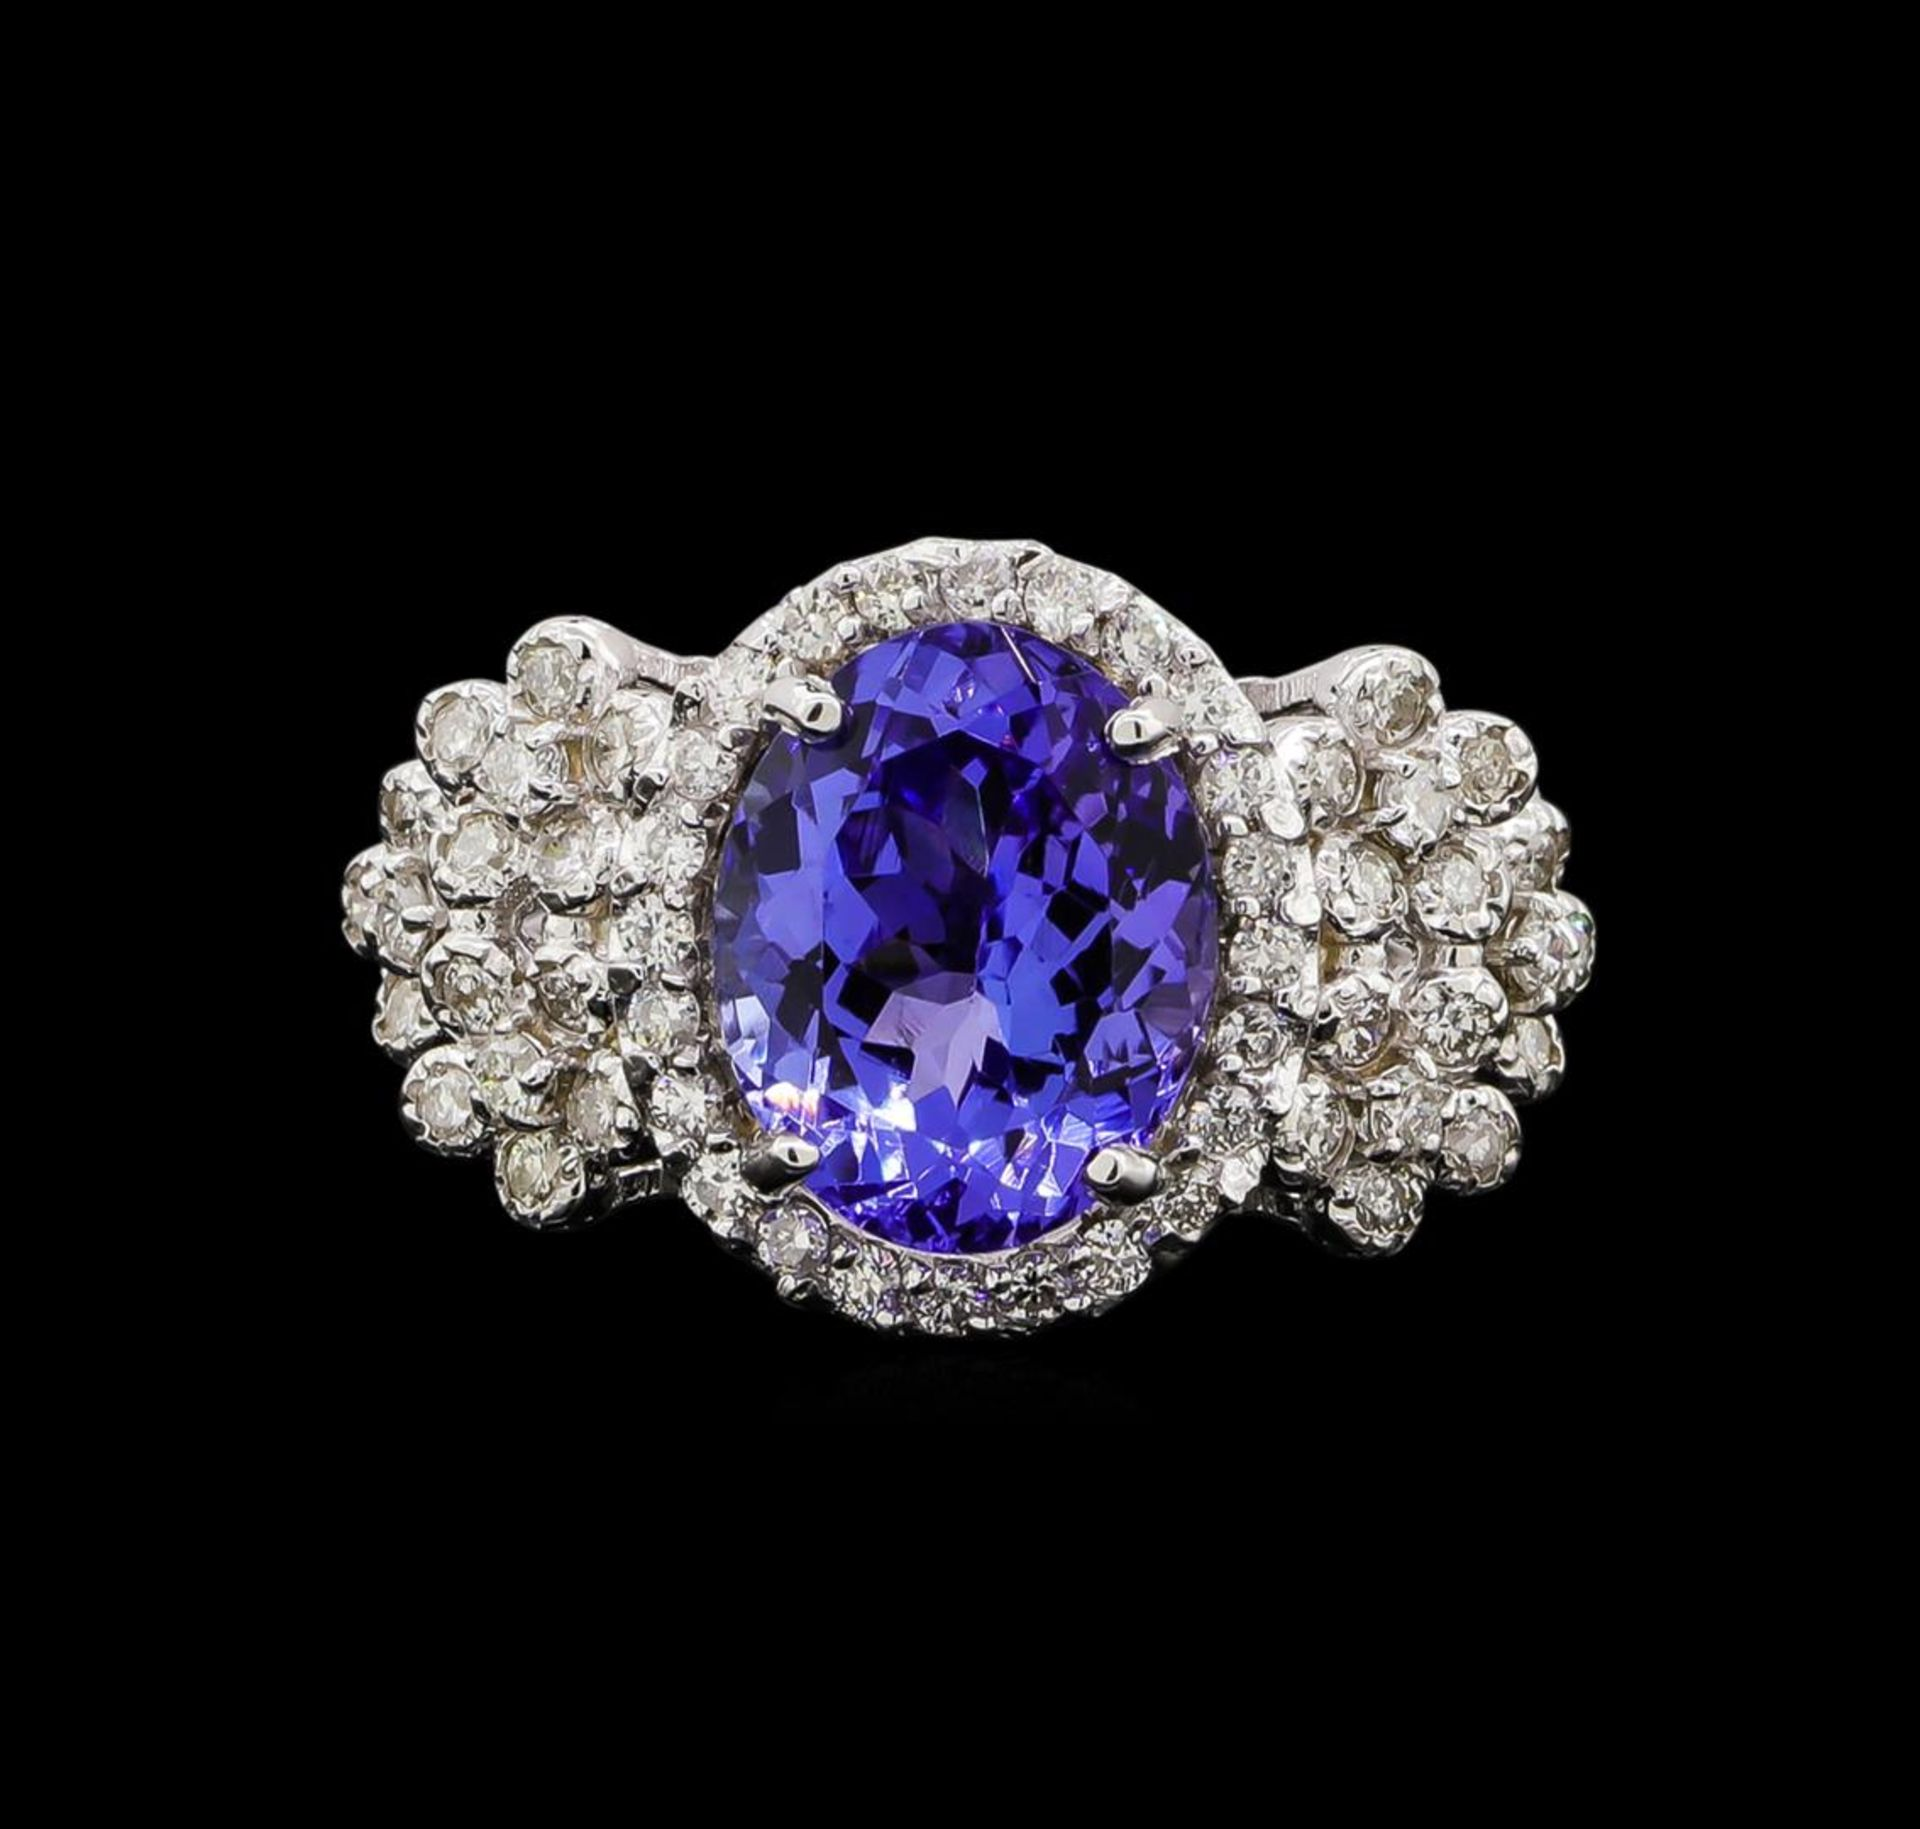 14KT White Gold 4.31 ctw Tanzanite and Diamond Ring - Image 2 of 5